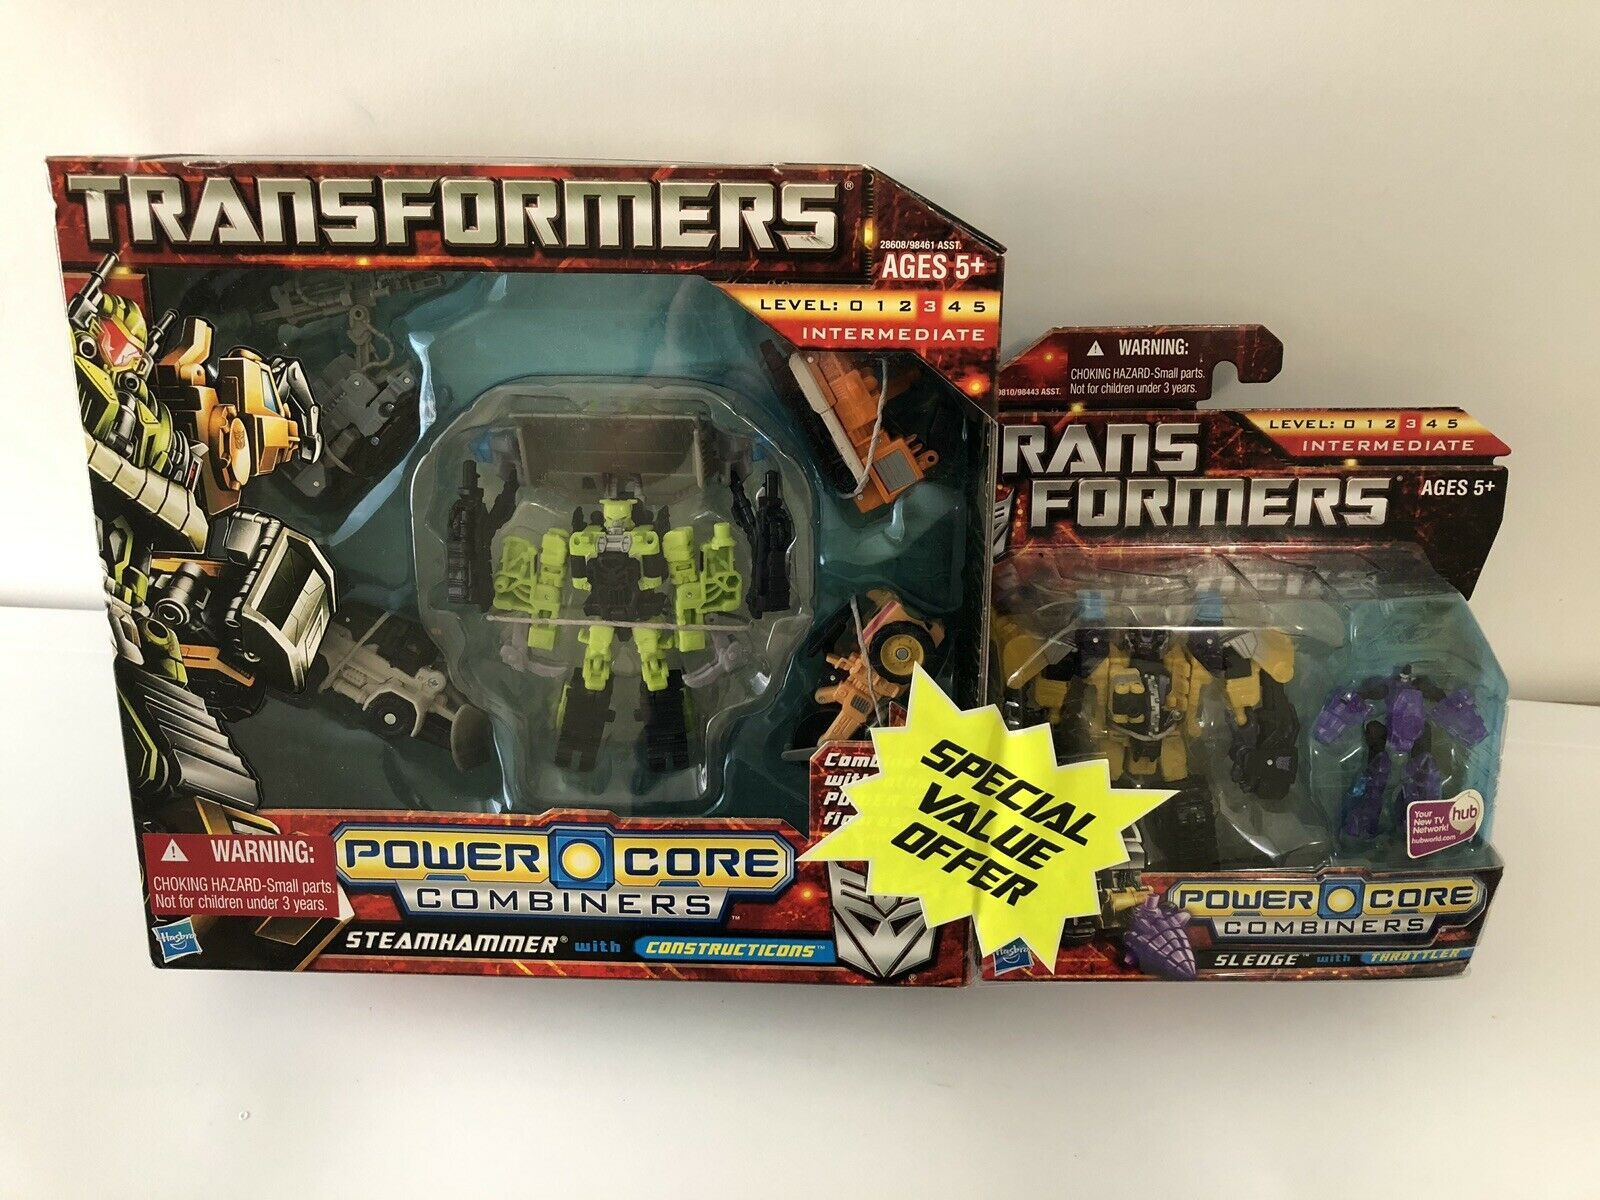 Transformers Power Core coupleurs Steamhammer & Sledge Bonus Set Nouveau